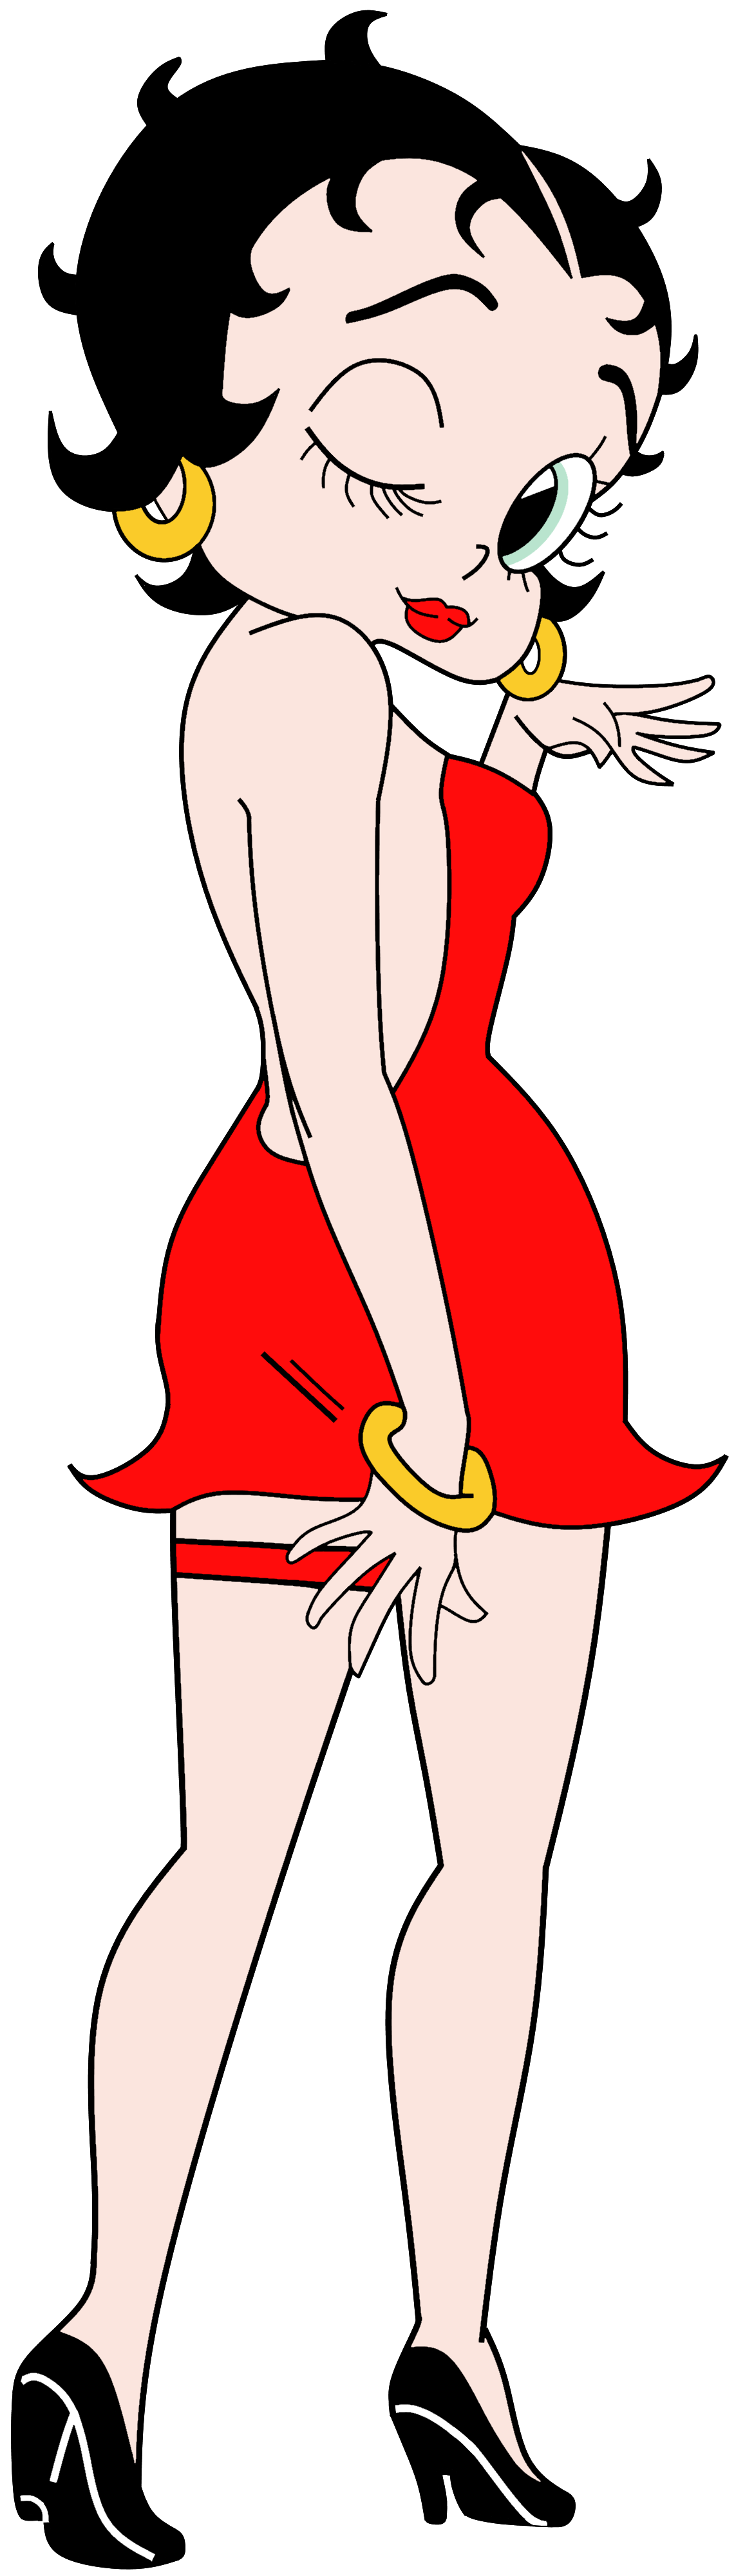 Betty Boop Anime Render.png